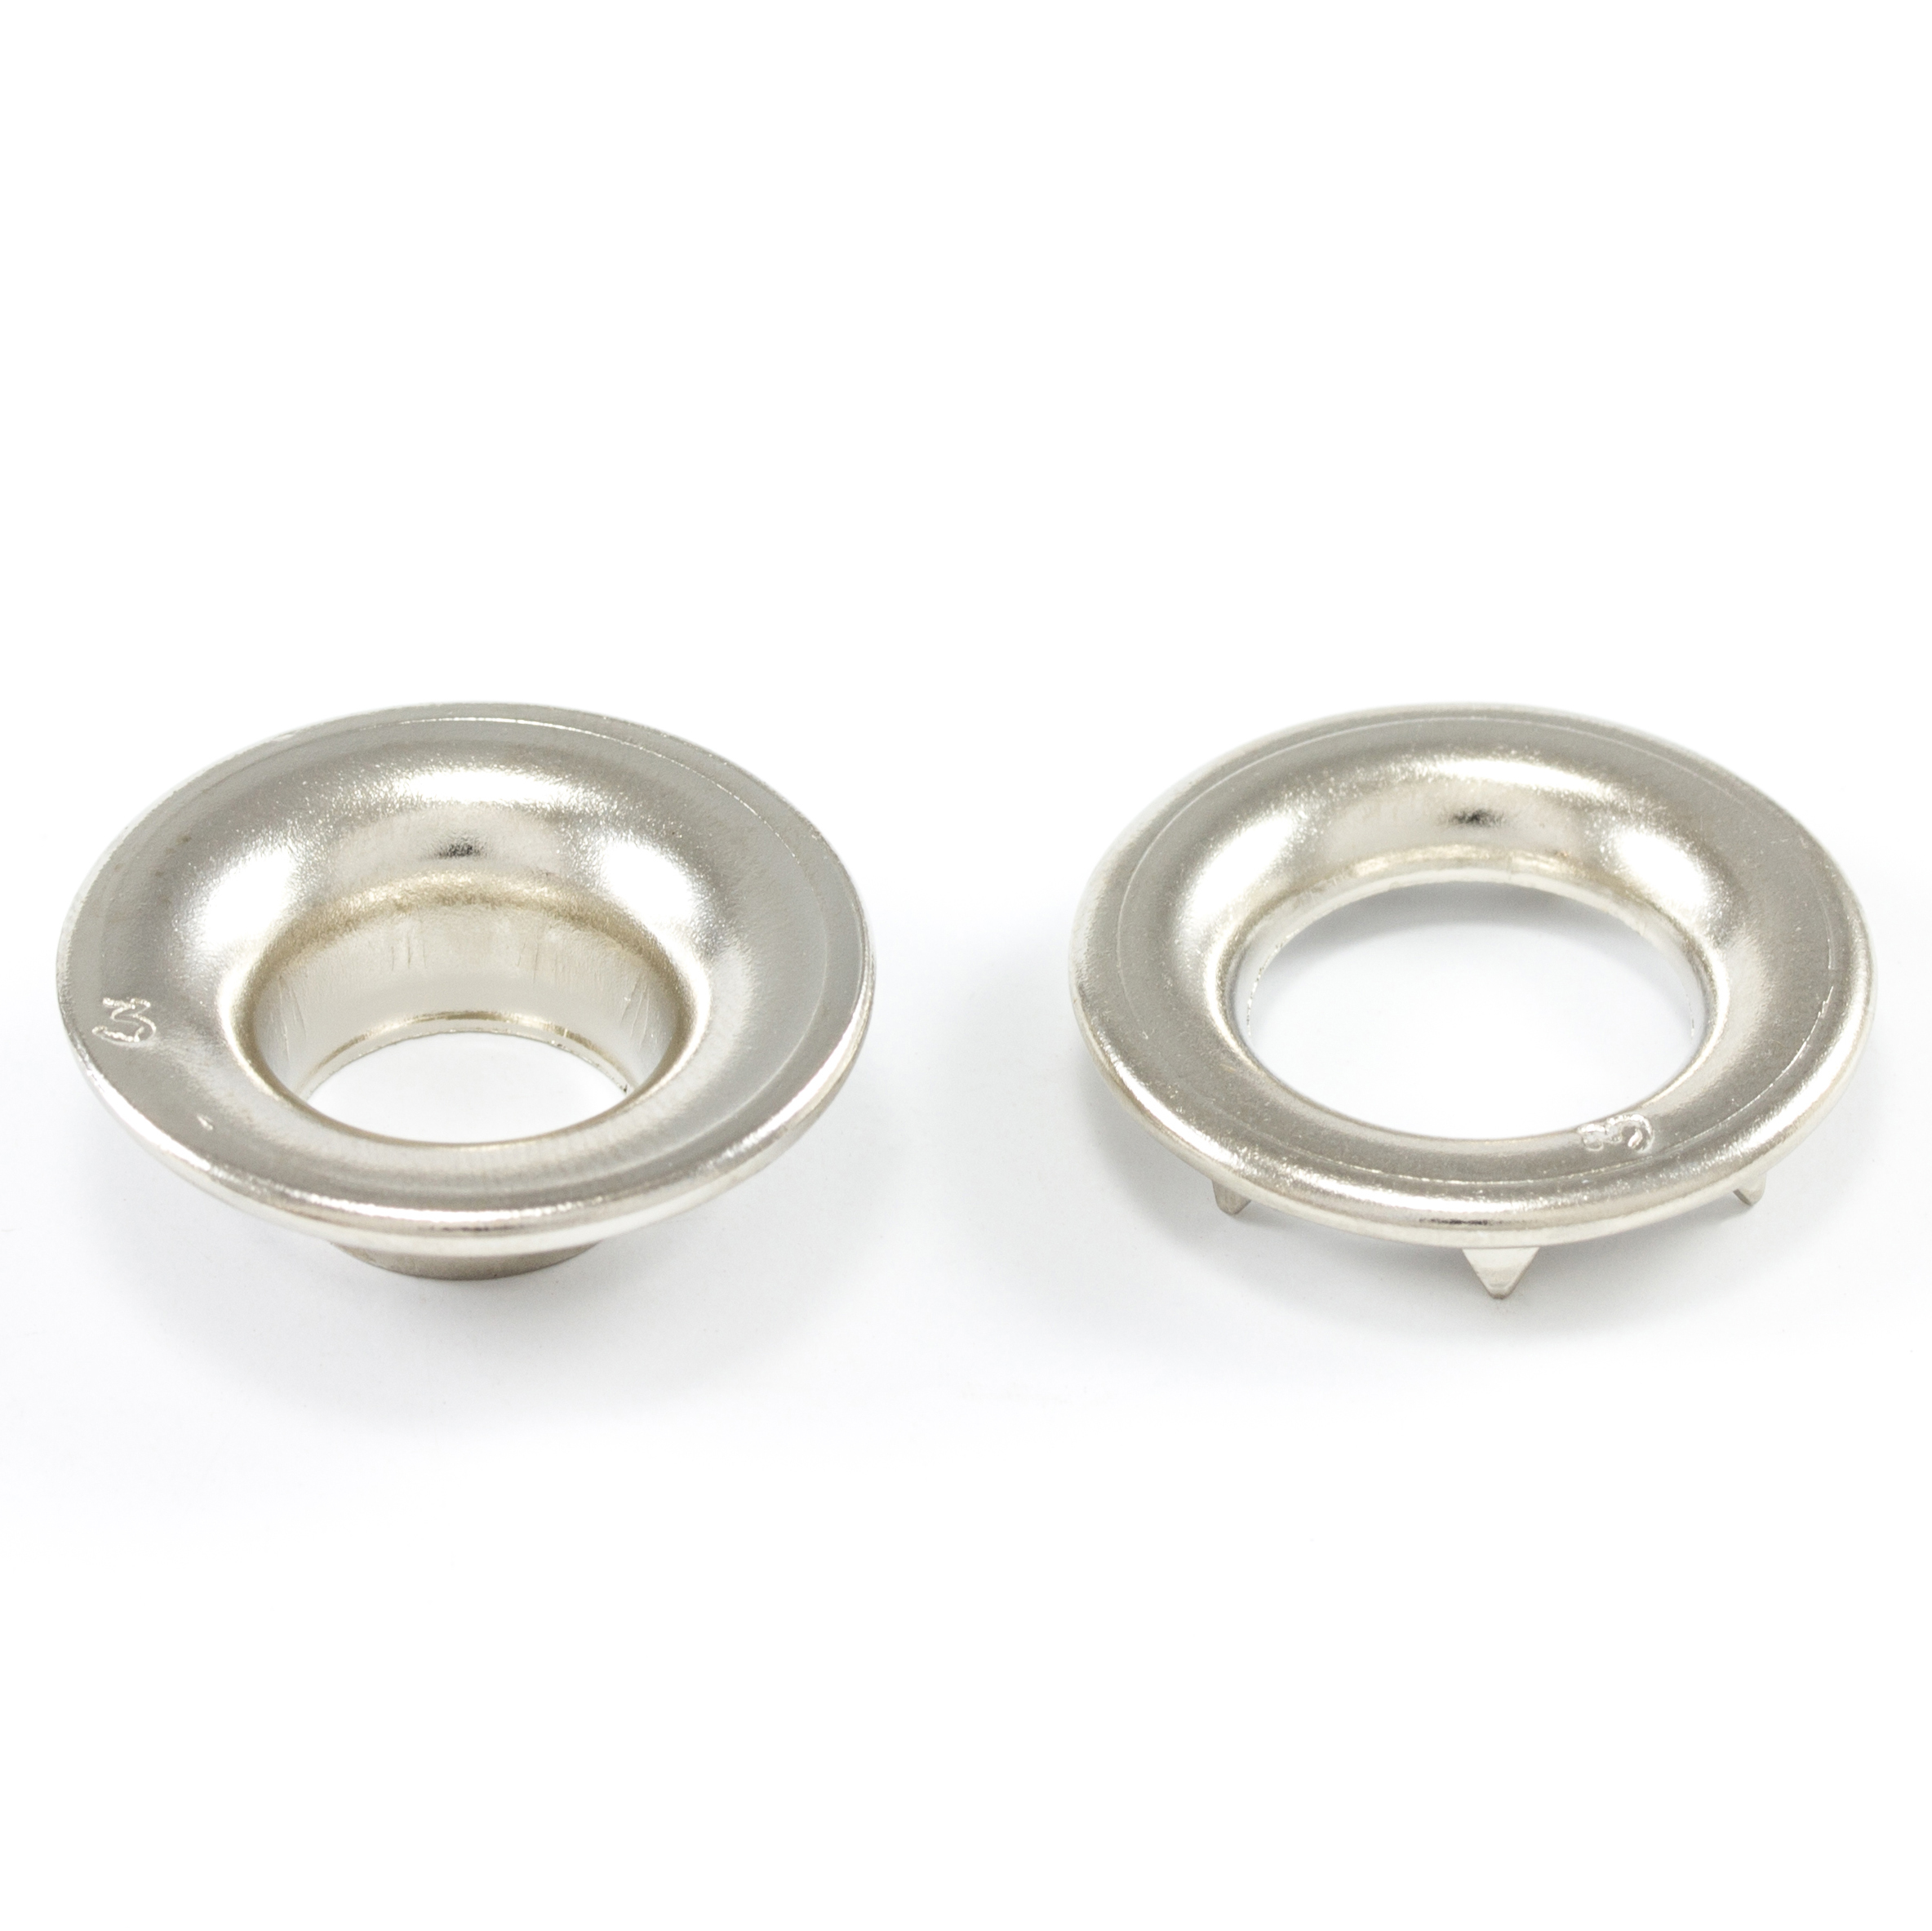 Thumbnail DOT Rolled Rim Grommet with Spur Washer #3 Nickel Plated Brass 15/32 1